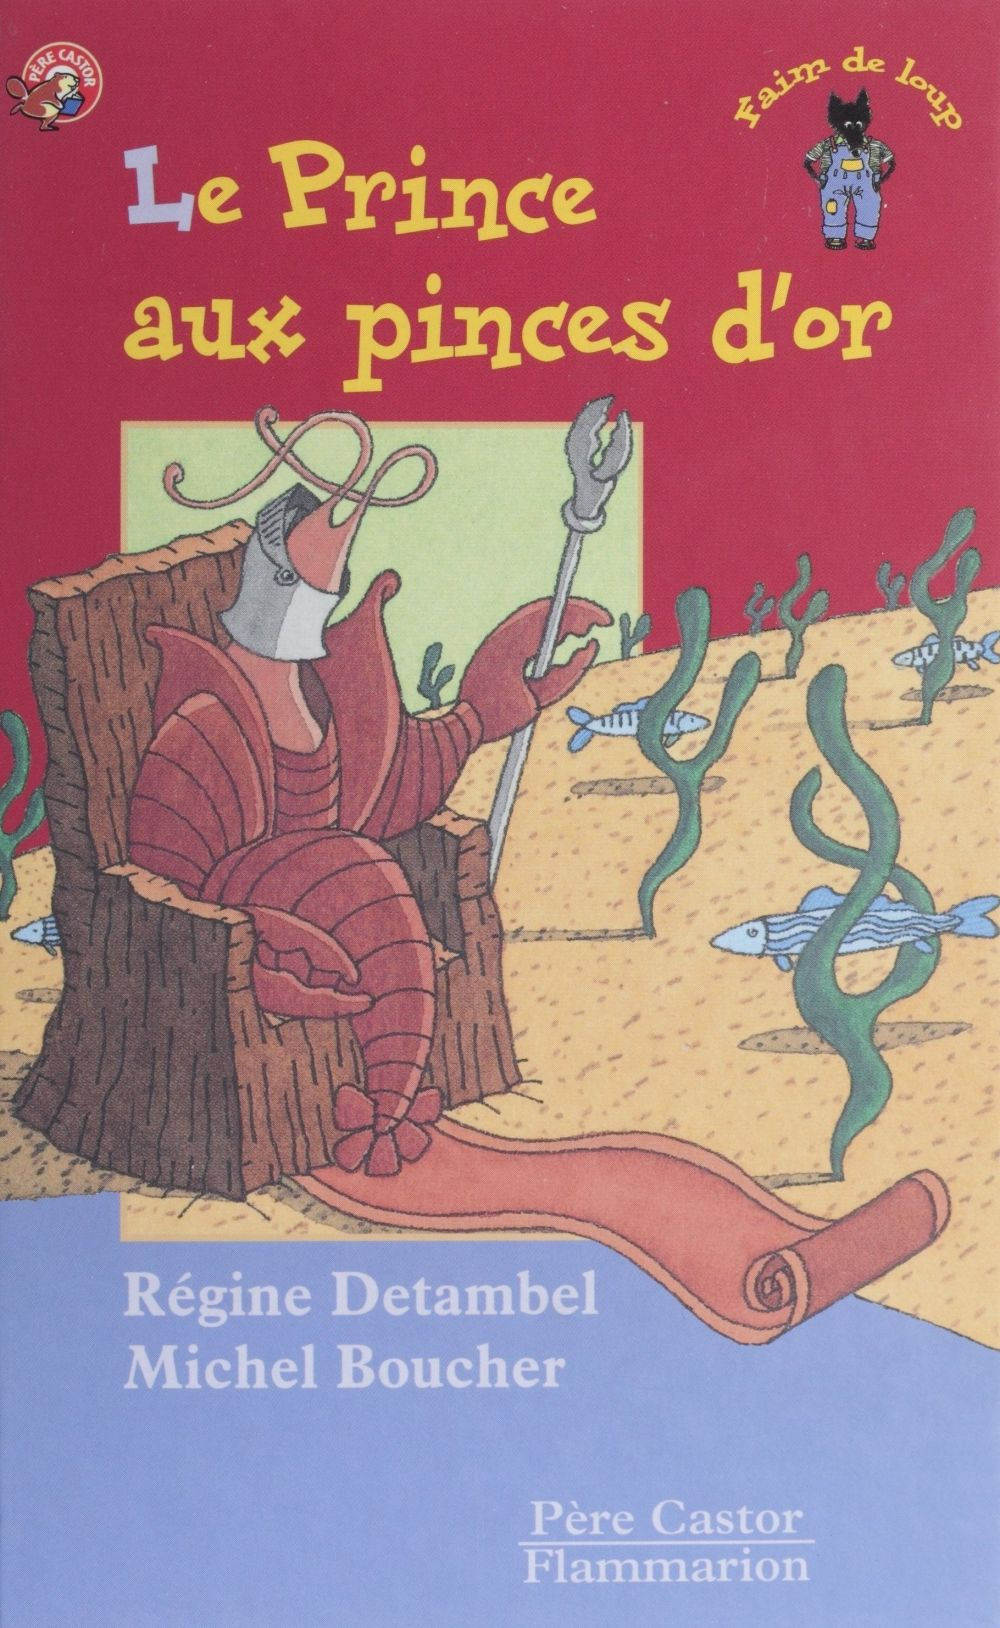 Le Prince aux pinces d'or